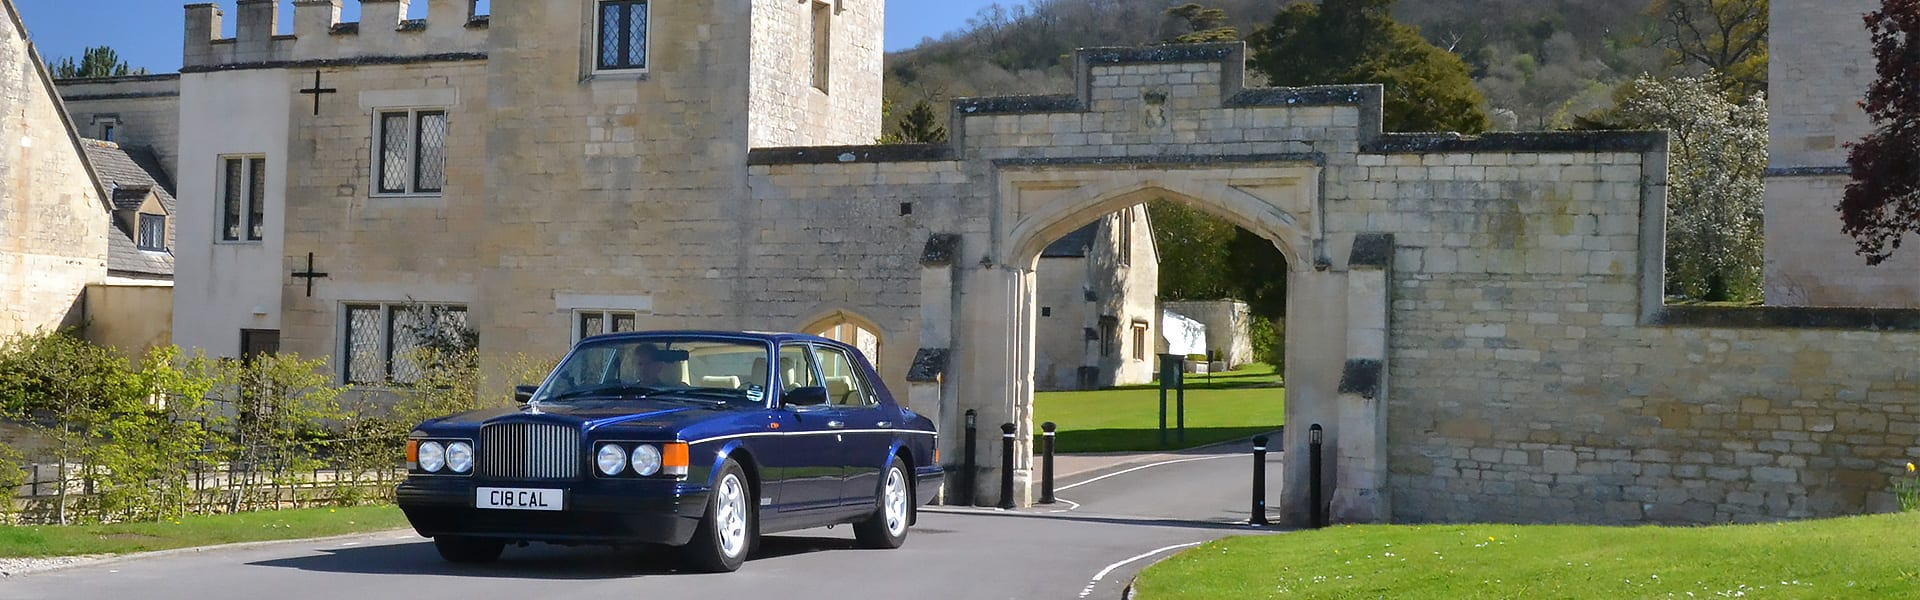 Bentley-Brooklands-Ellenborough-Hero-1